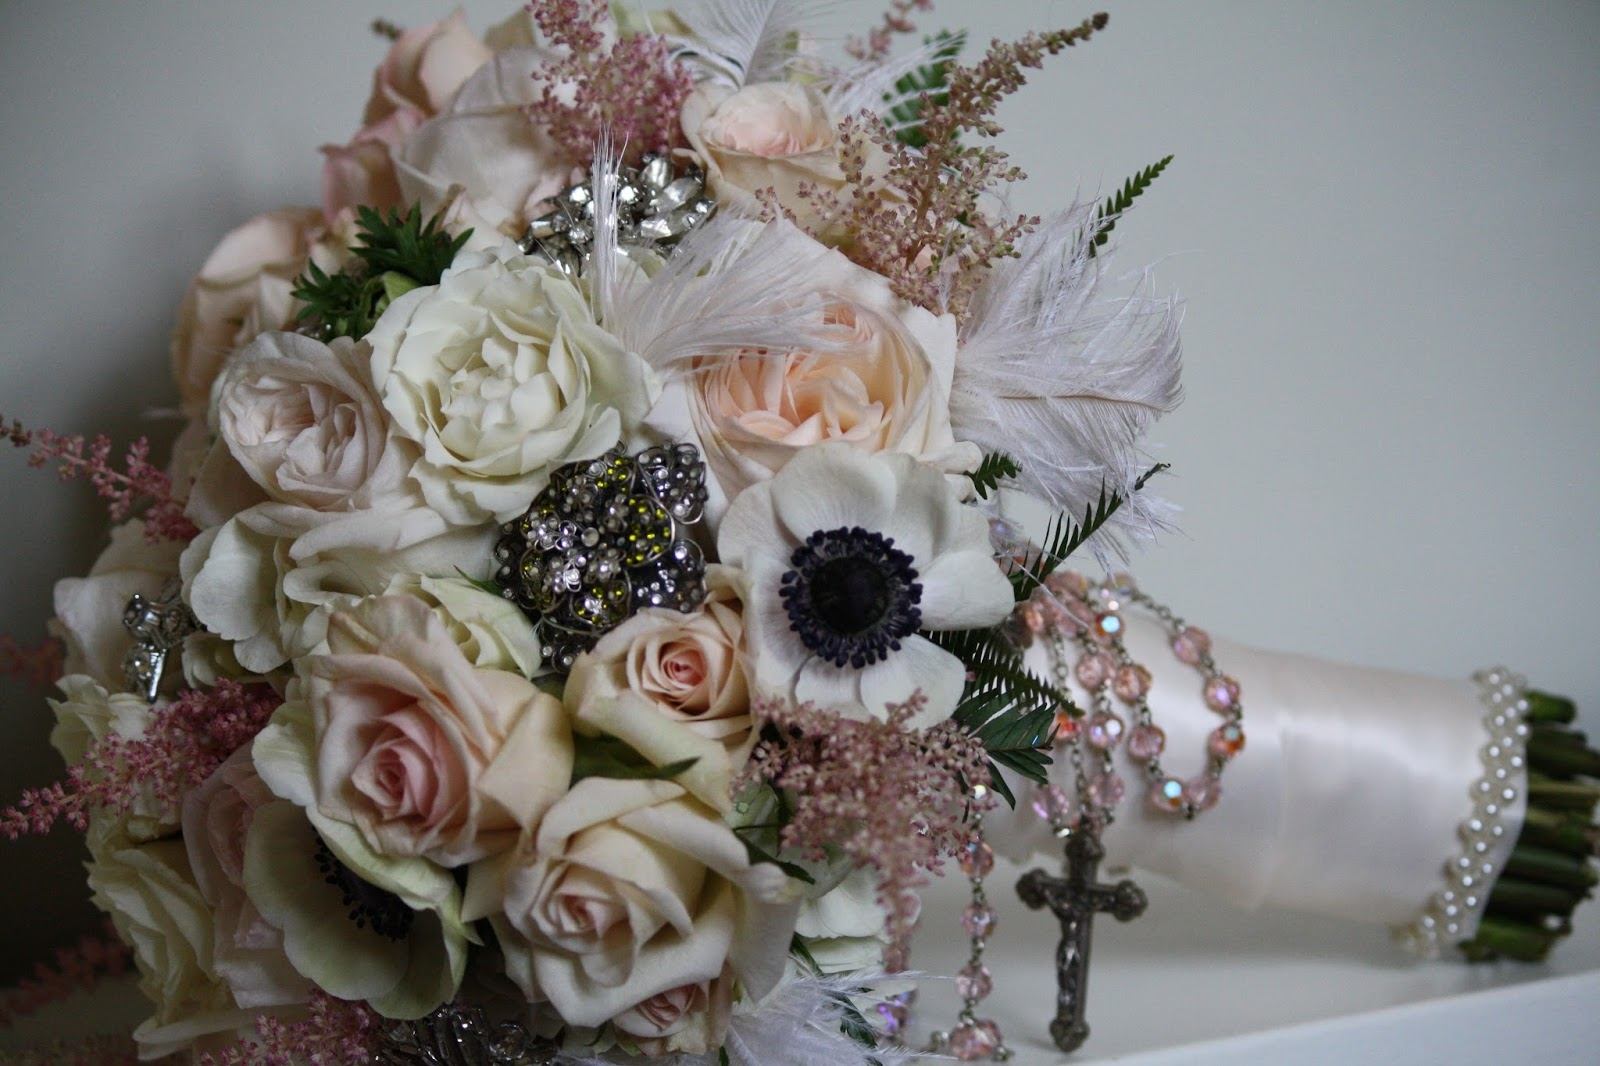 Brooch Bouquet - The bouquet is adorned with vintage brooches - Patience Garden Rose, Rose Bridal Bouquet, Rose Bouquet, Wedding Bouquet - Splendid Stems Wedding Flowers - Wedding Florist